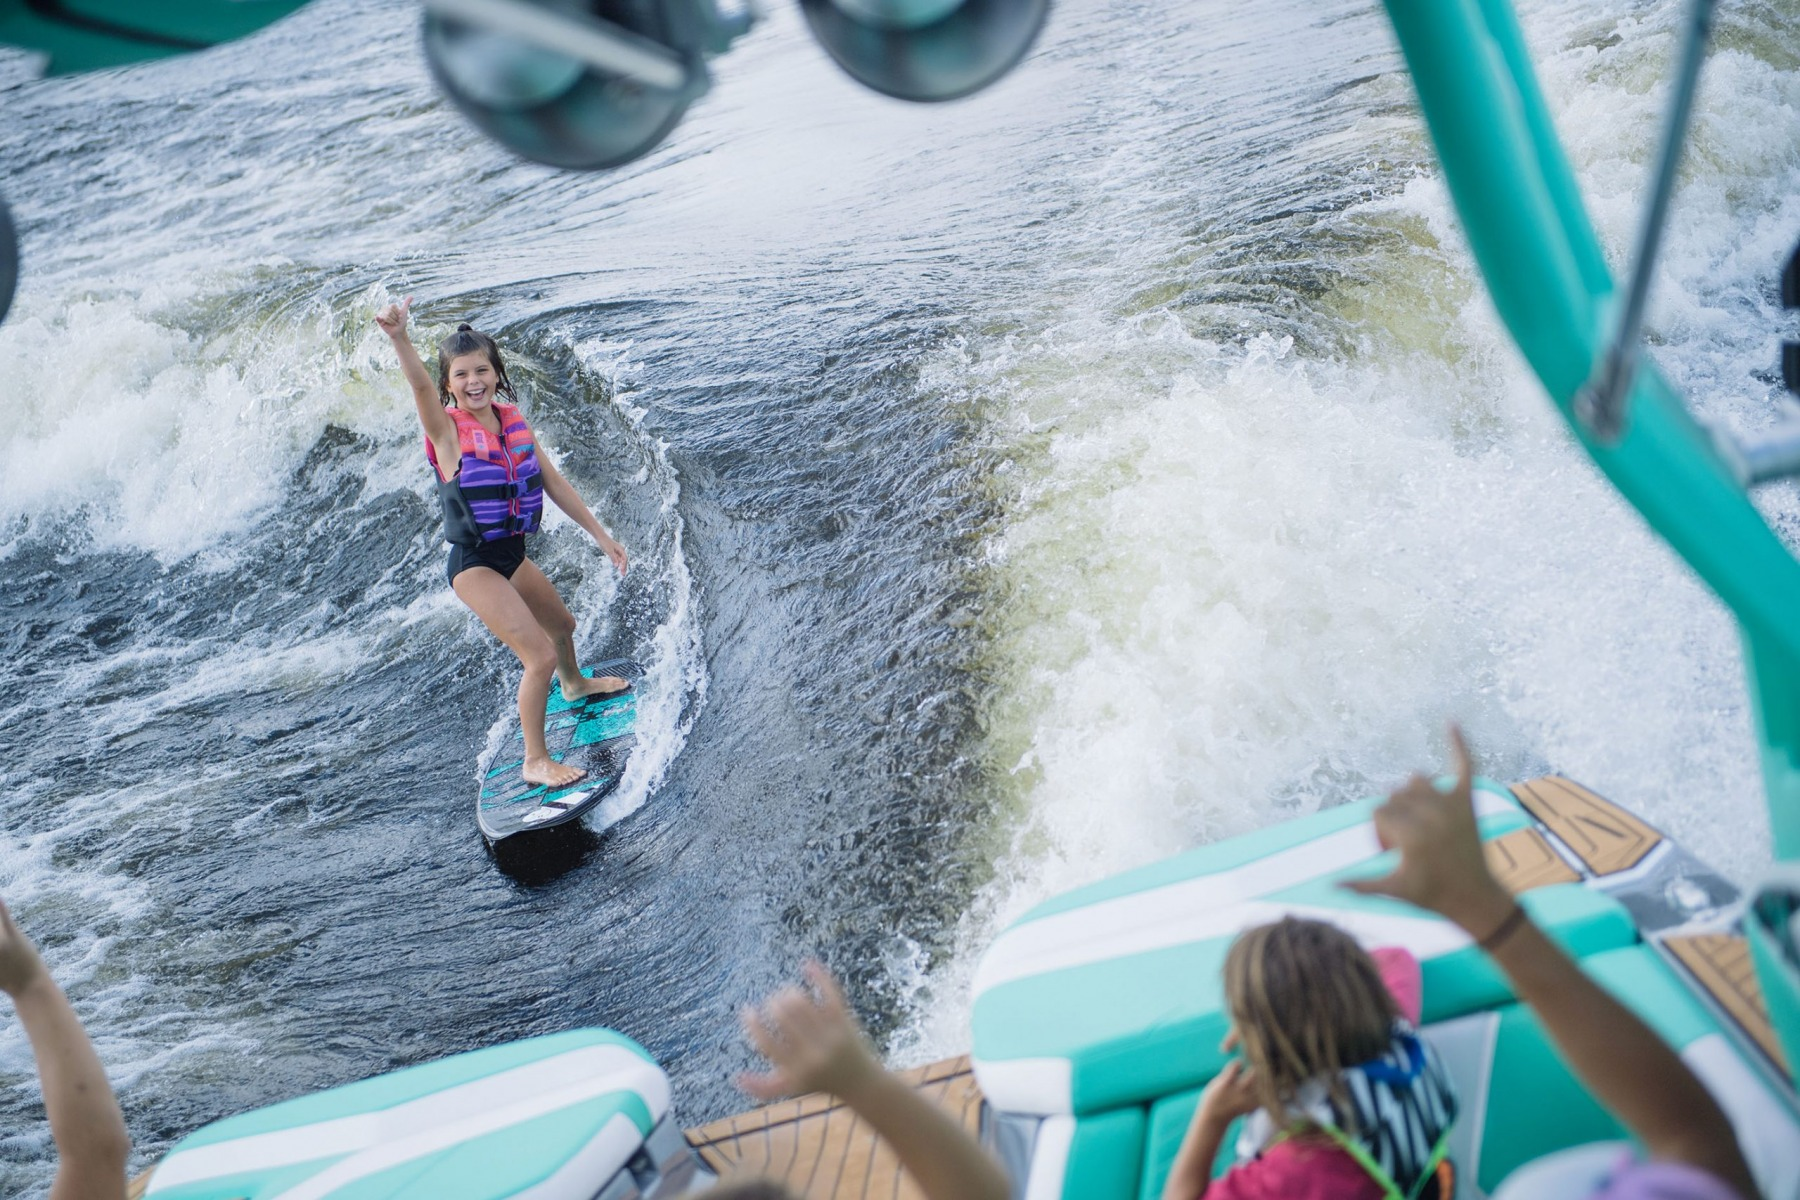 Wake Surfing Behind the 2022 Nautique G25 Wake Boat